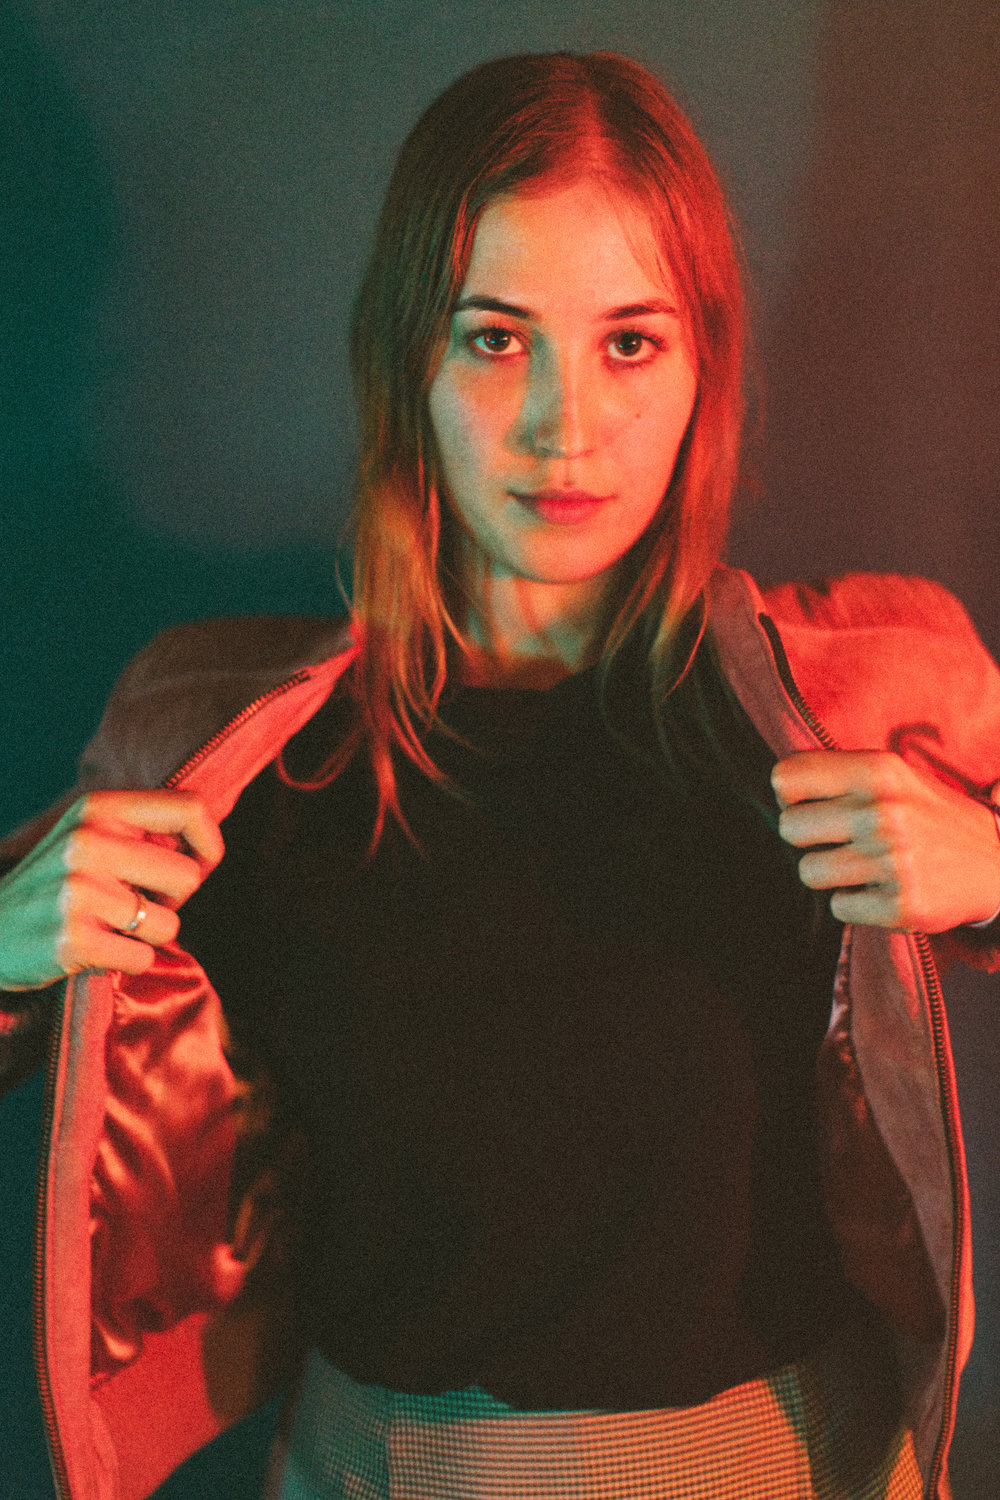 Hatchie - SURE - Main.jpg